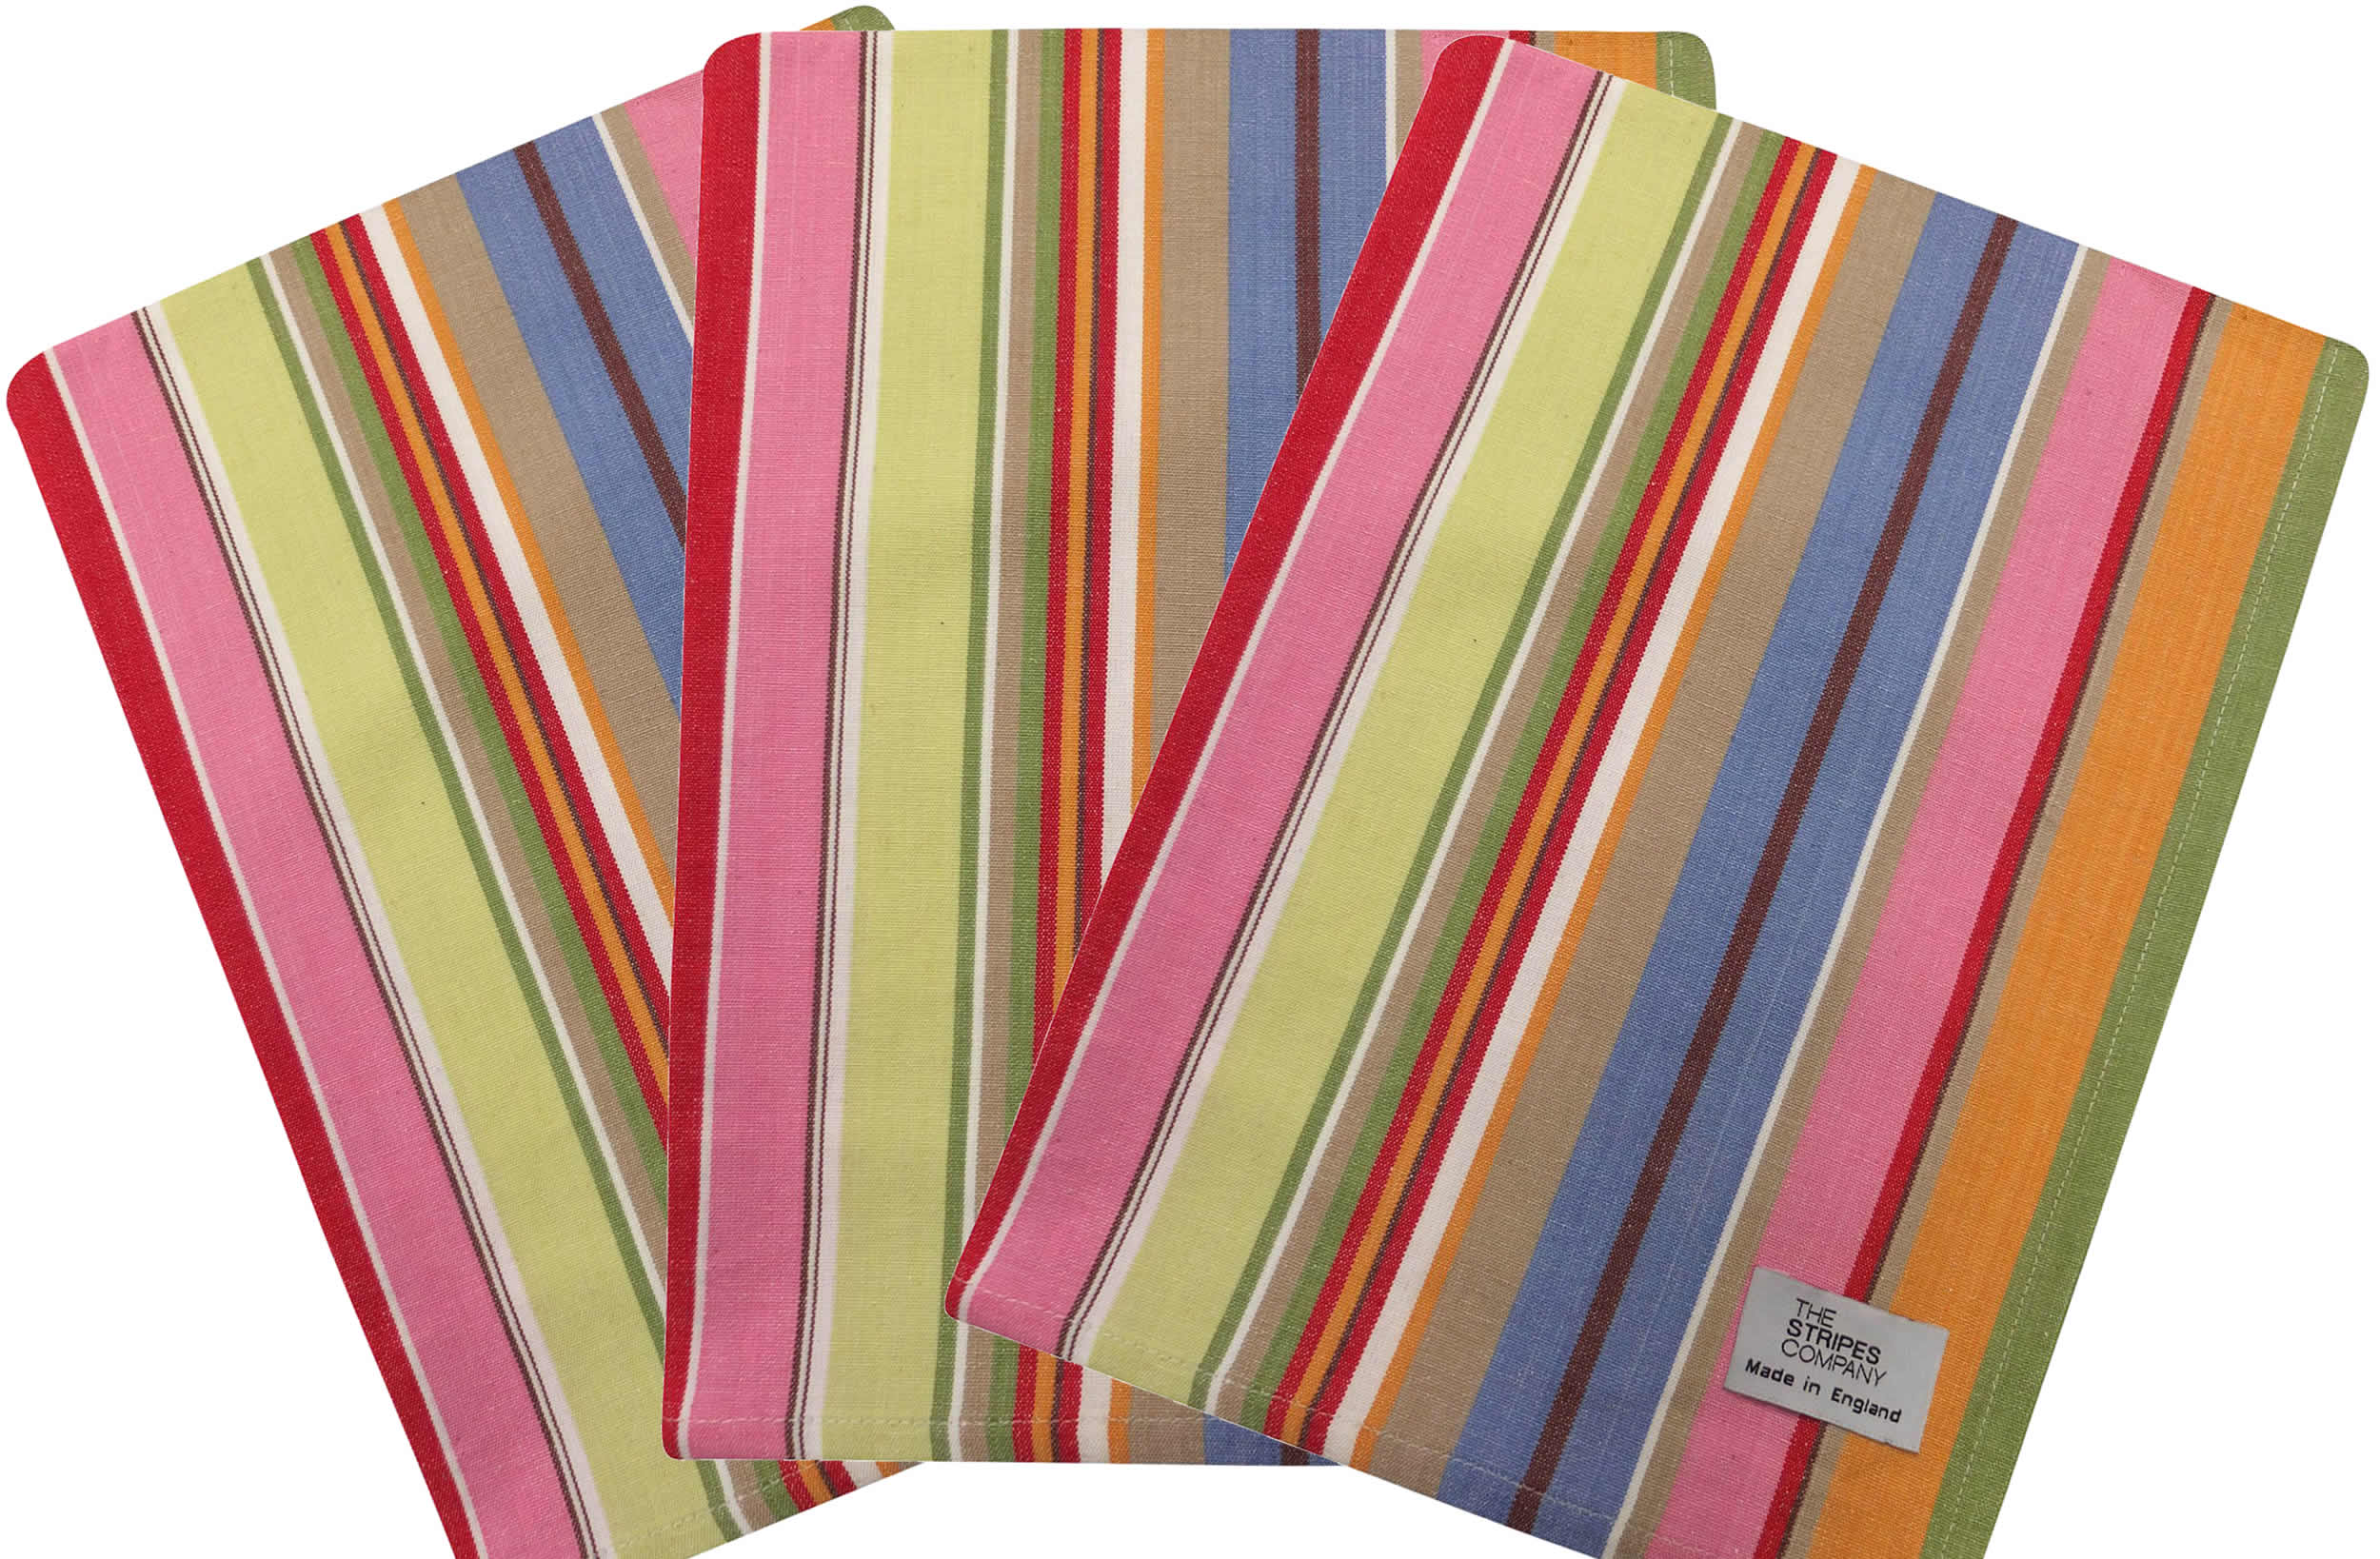 Blue and Pink Striped Tea Towels | Set of 3 Tea Towels